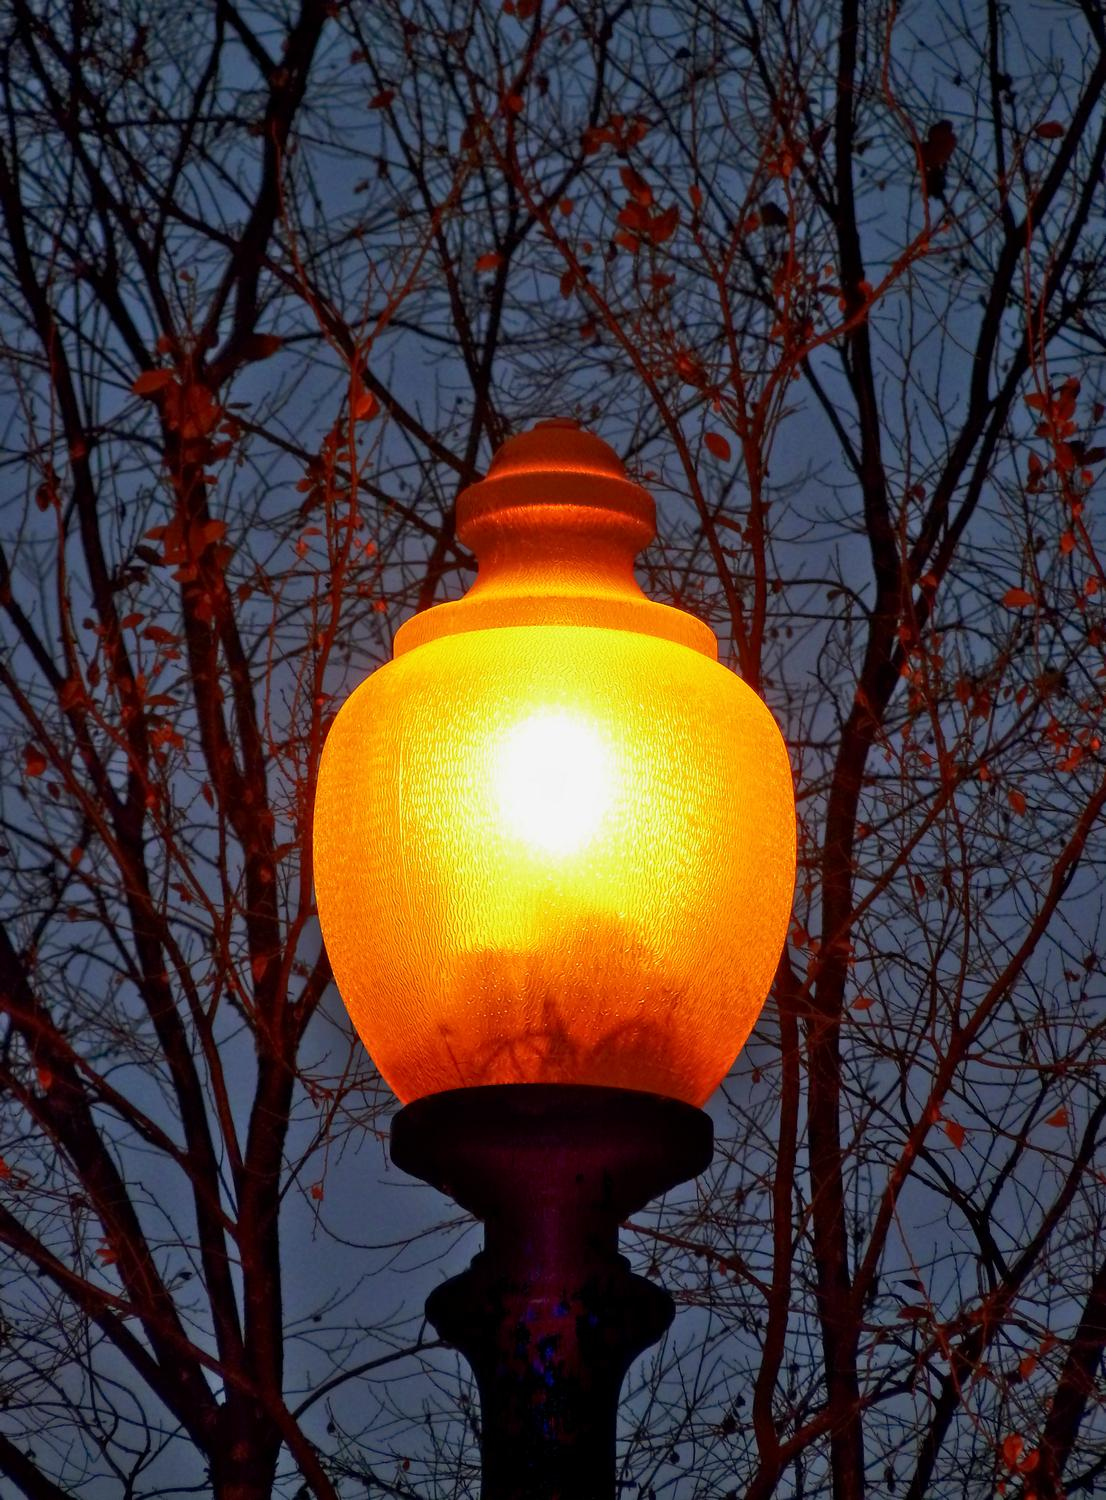 lamp light in Washington DC at dusk - <center>A light in DC - Techno-Impressionist Museum - Techno-Impressionism - art - beautiful - photo photography picture - by Tony Karp